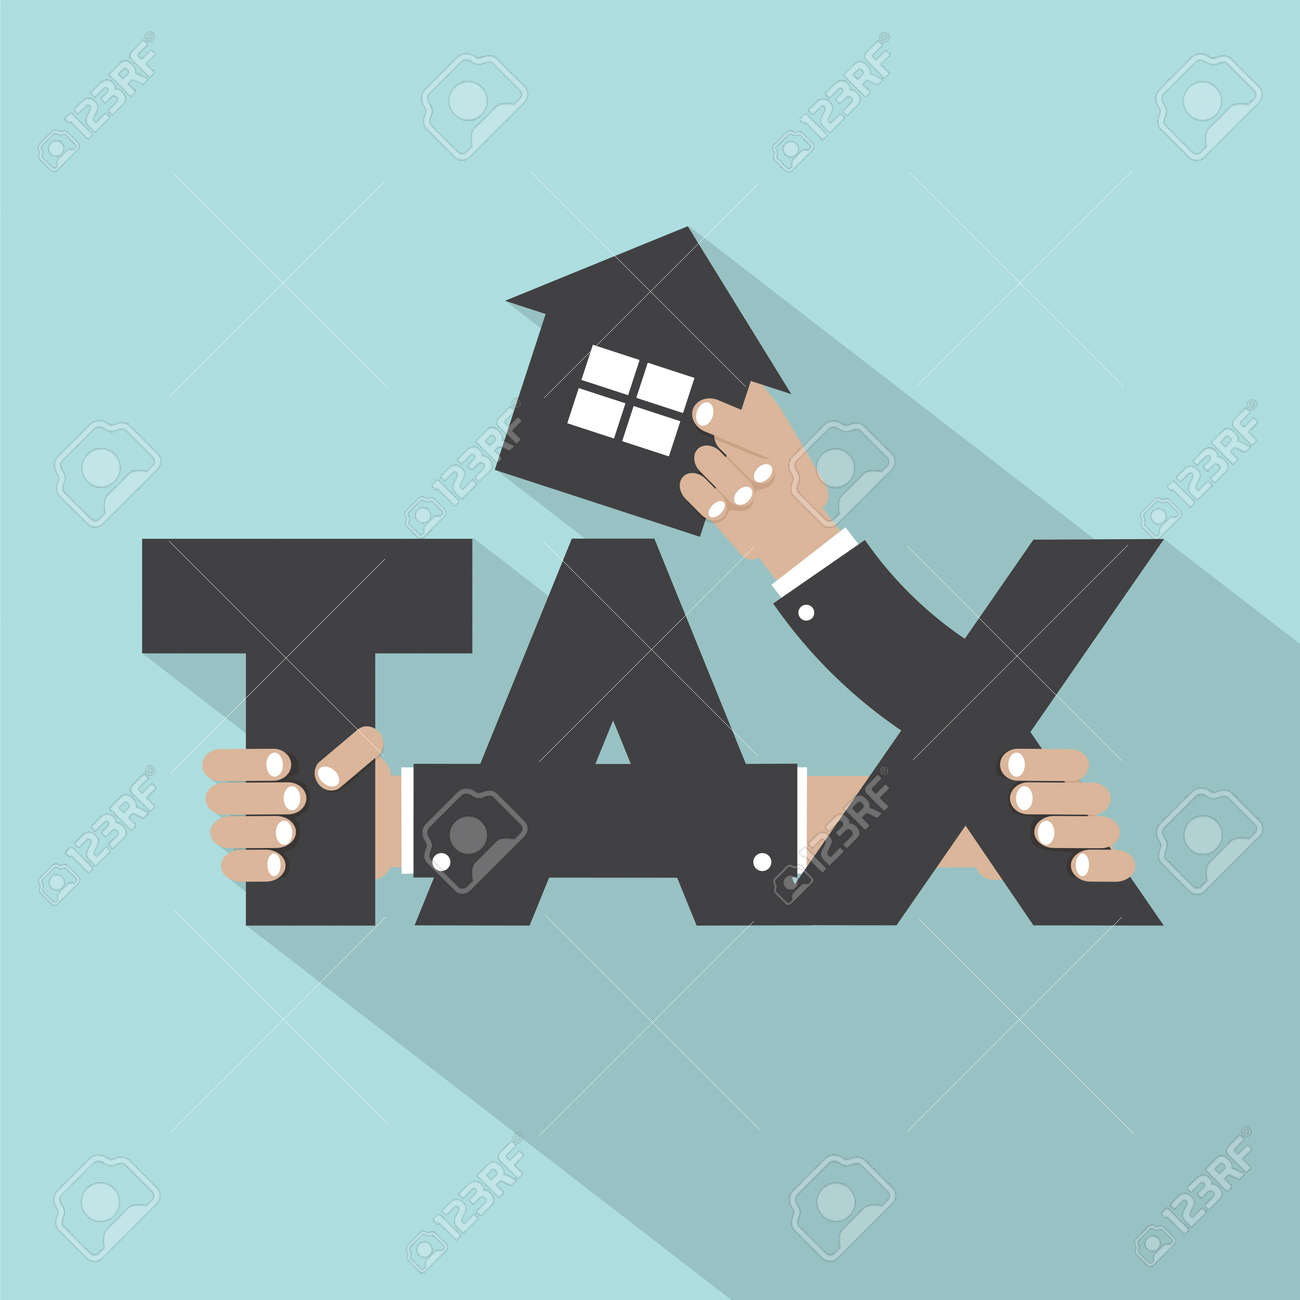 Home Tax Typography Design Vector Illustration - 40182150